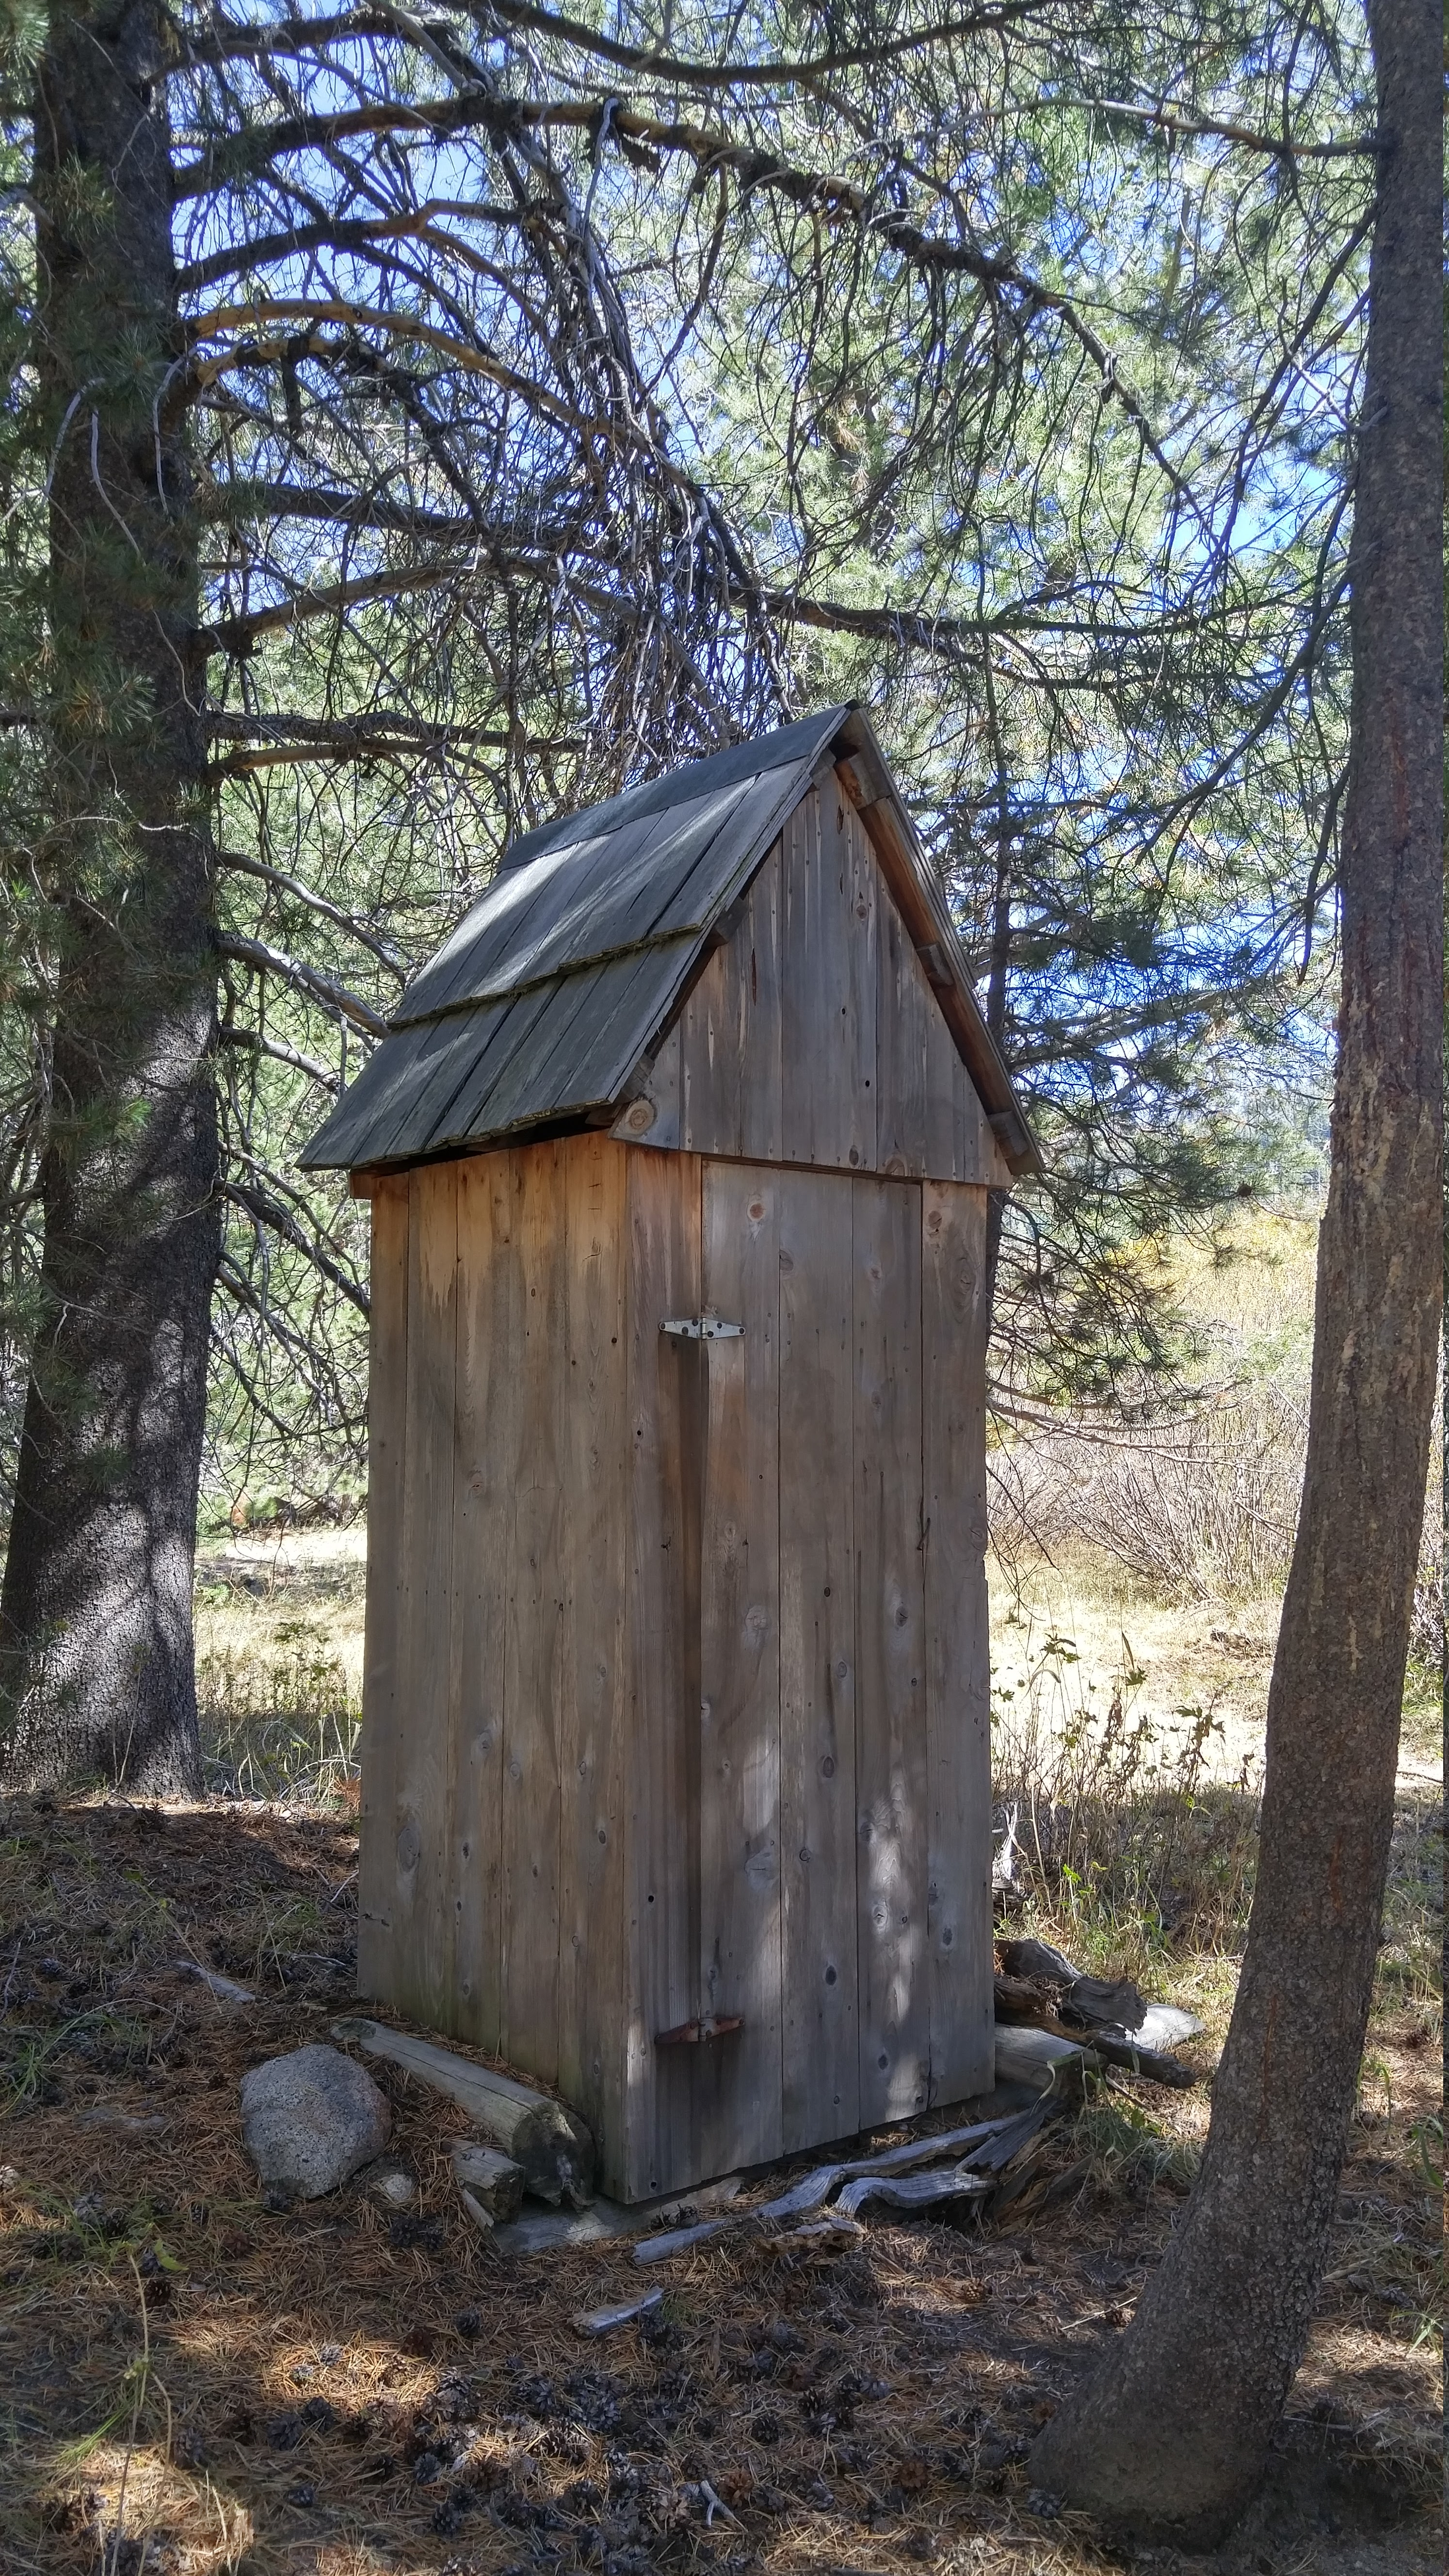 Outhouse Iceberg Wilderness California Bathroom Review - Outhouse bathroom